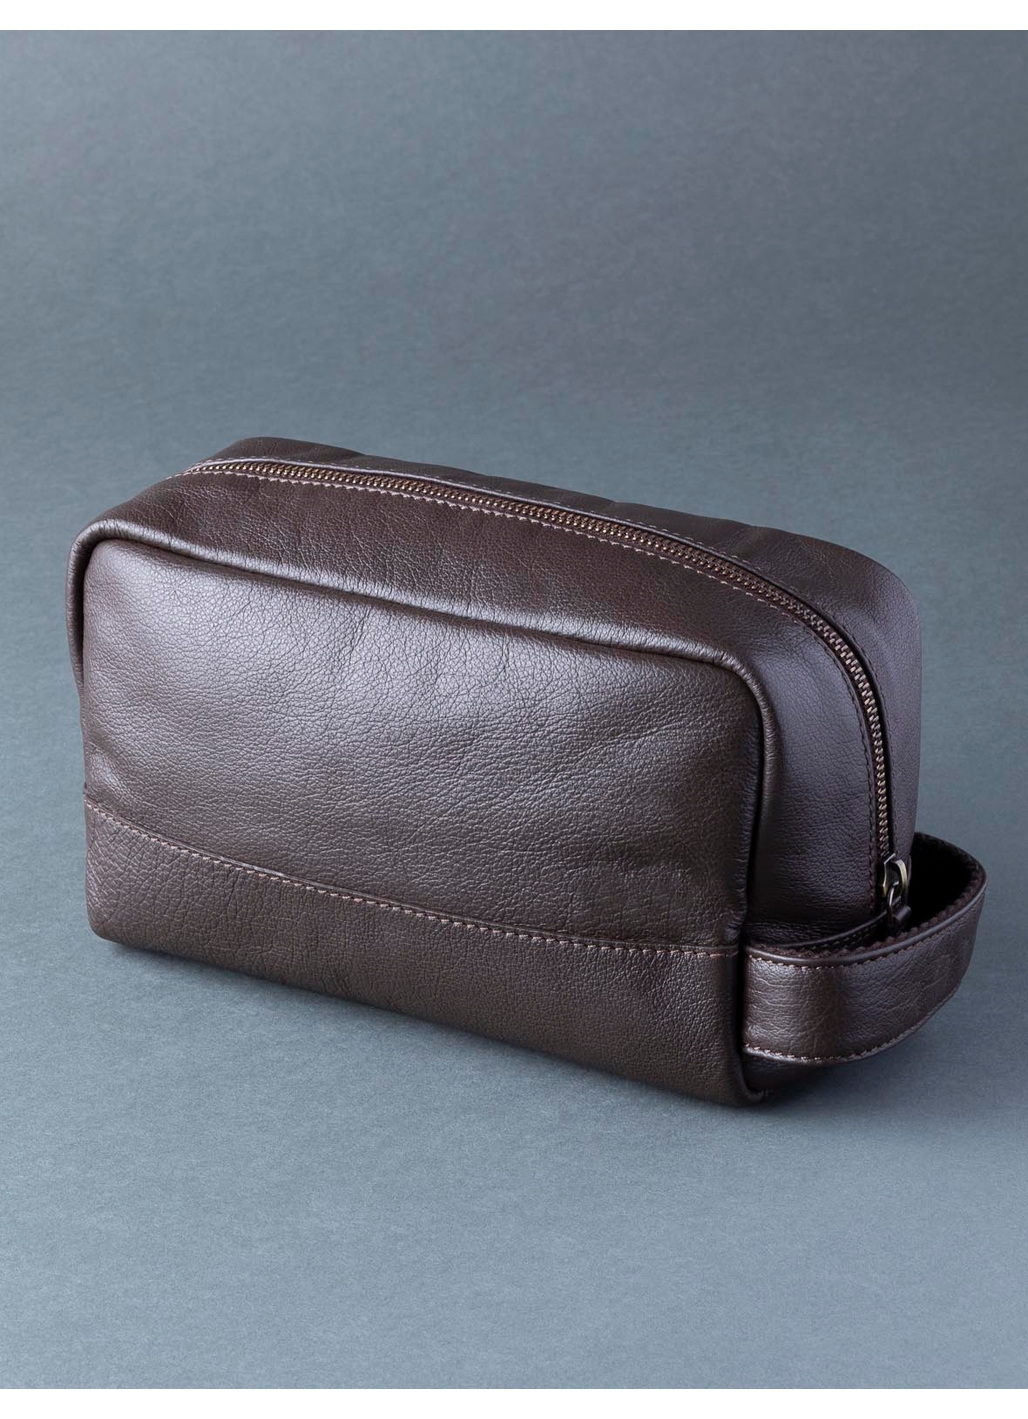 Scarsdale Leather Washbag in Brown